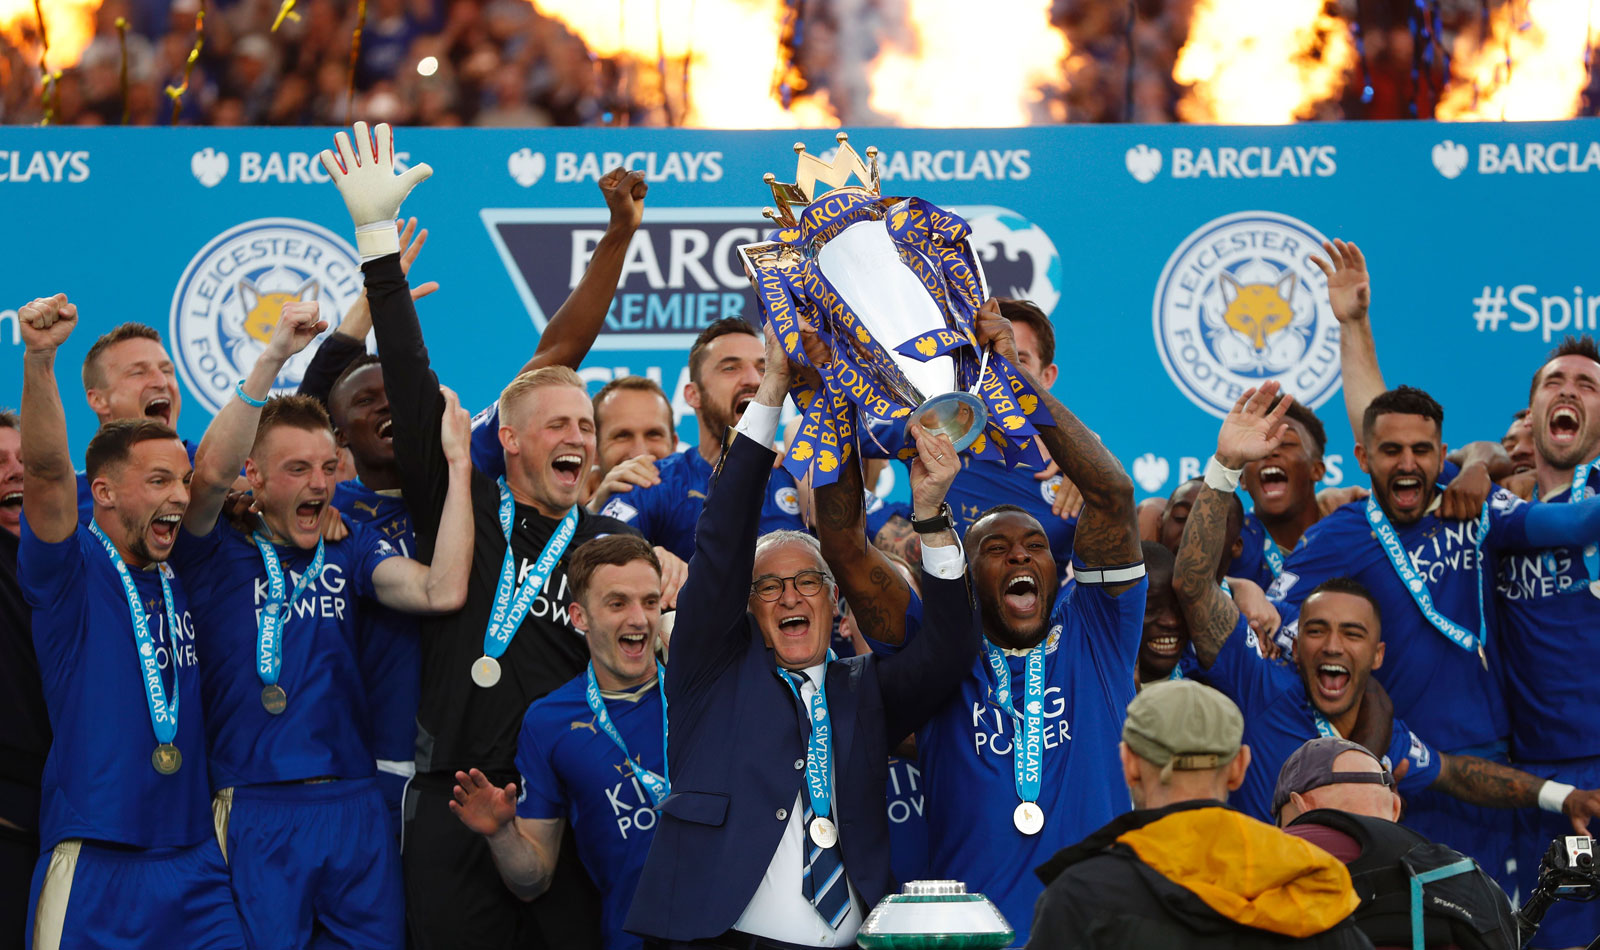 Leicester City lifts the trophy: The 2015-16 Premier League champions.